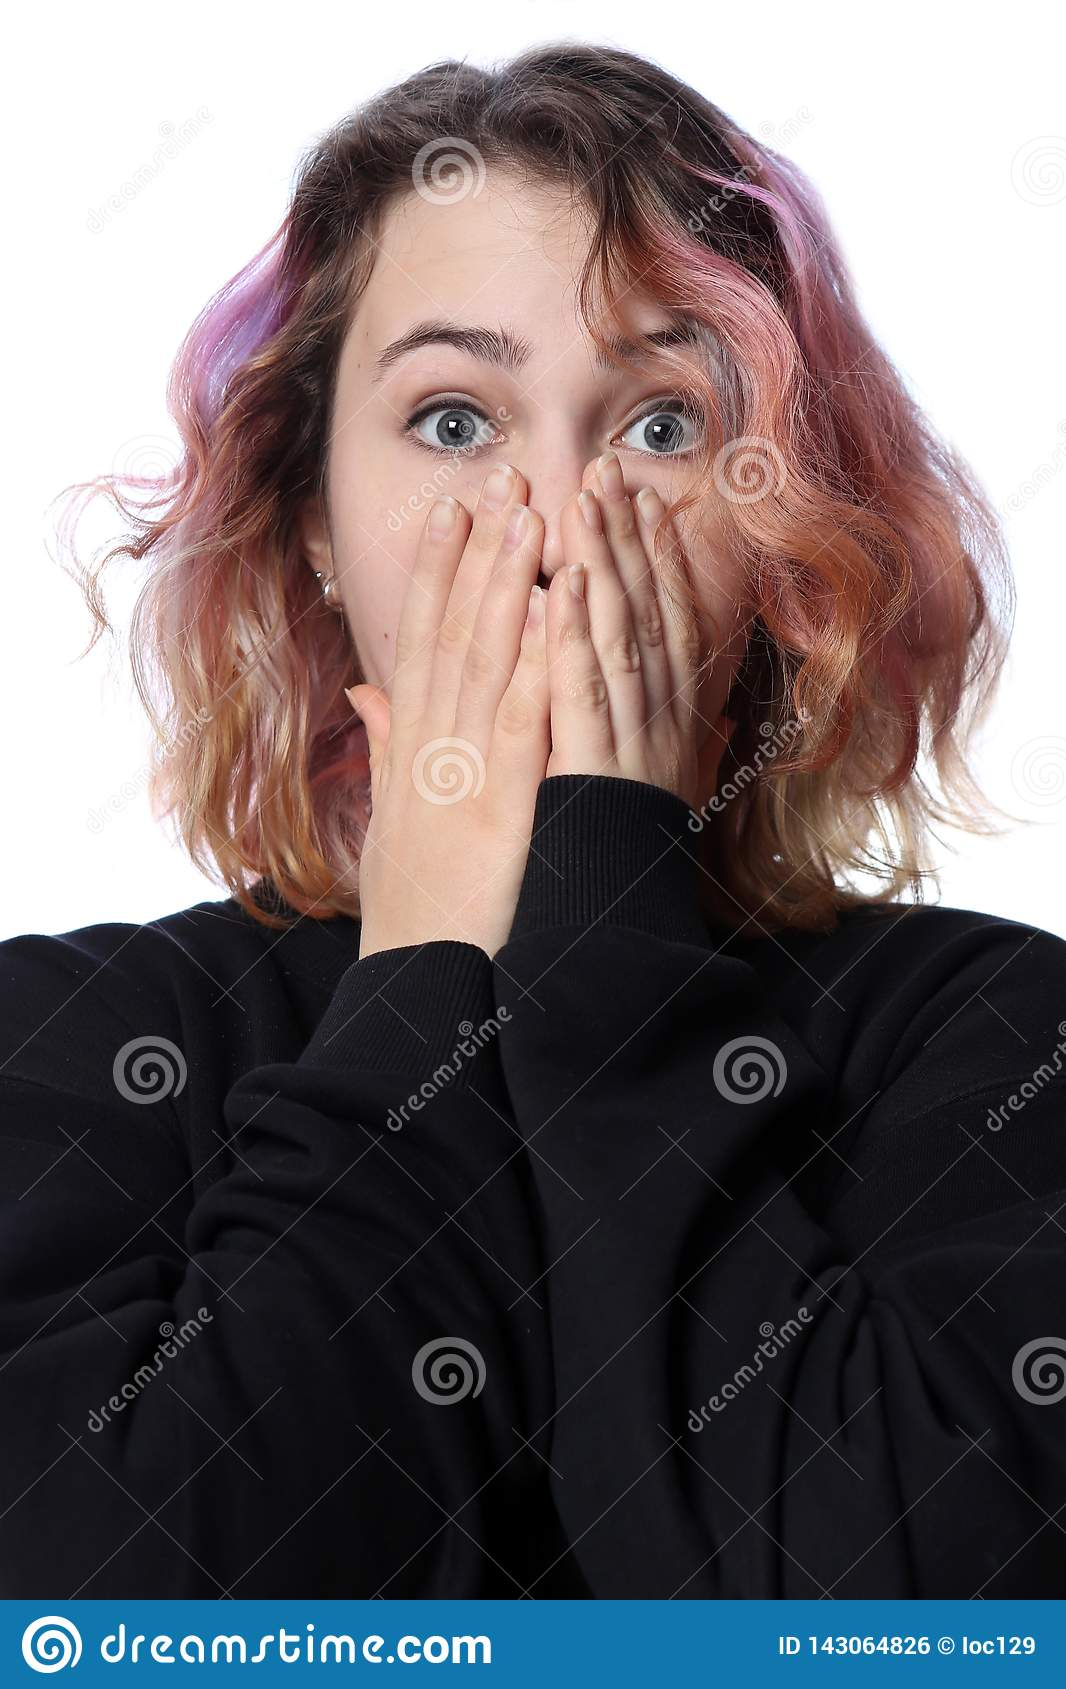 Girl with a haircut on a white background. Bright emotion of surprise. Red hair